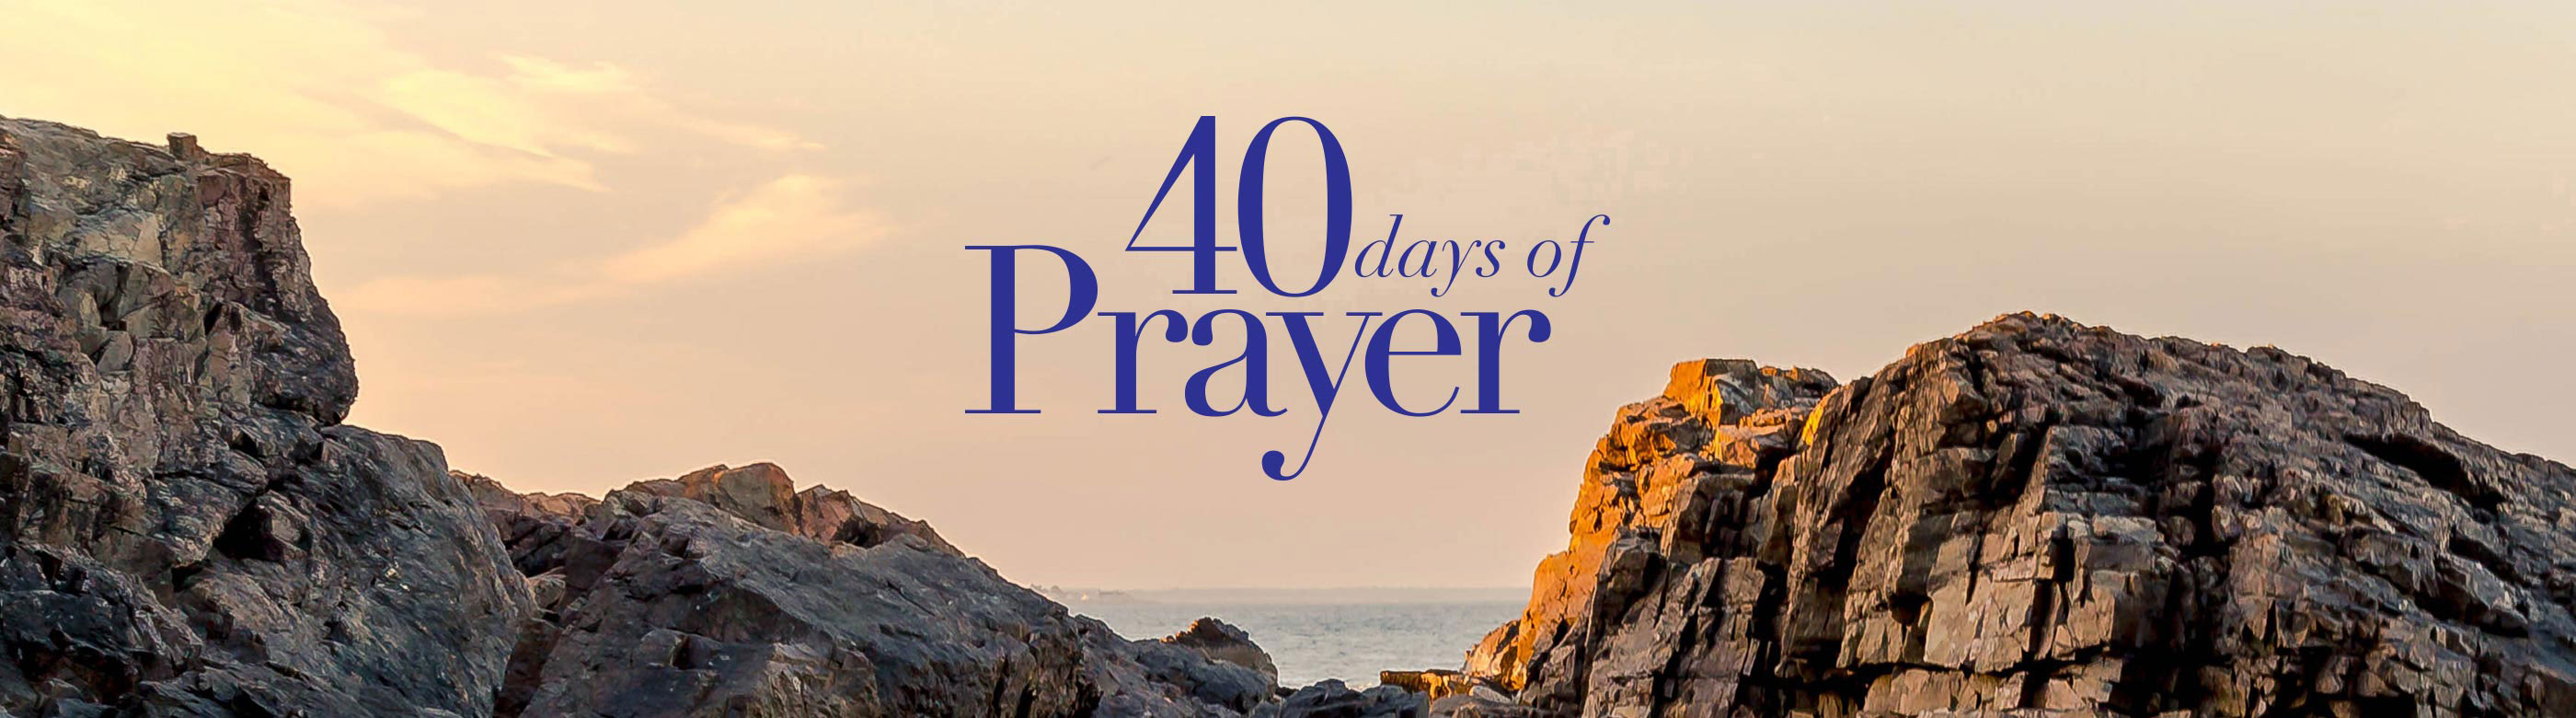 Saddleback Church: Women's Ministry Blog: A Lifetime of Prayer